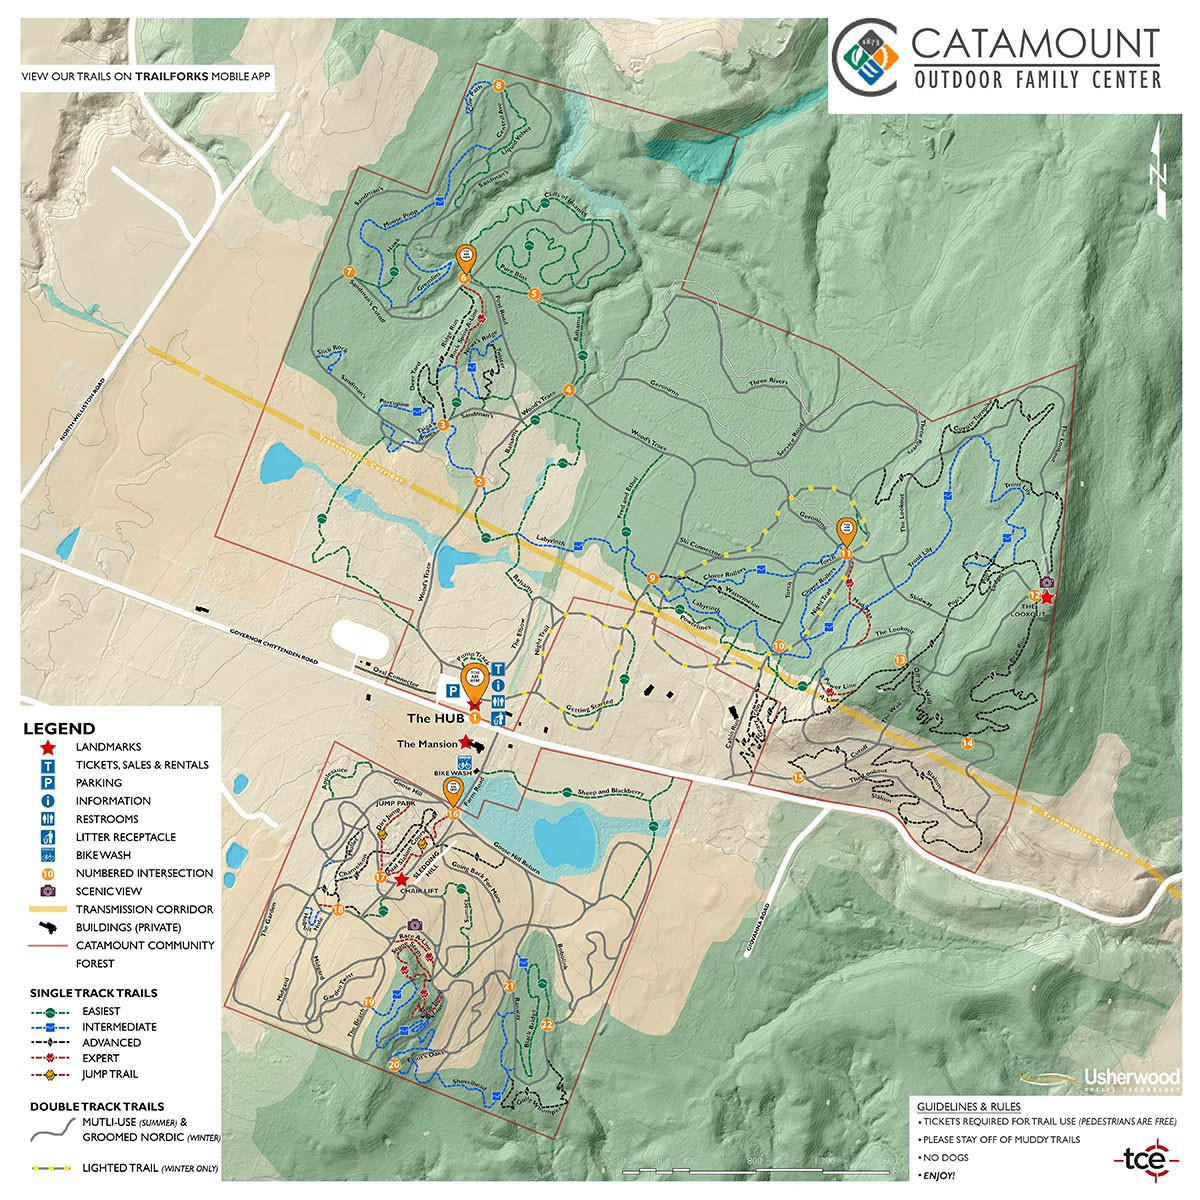 Catamount Trail Map 2021